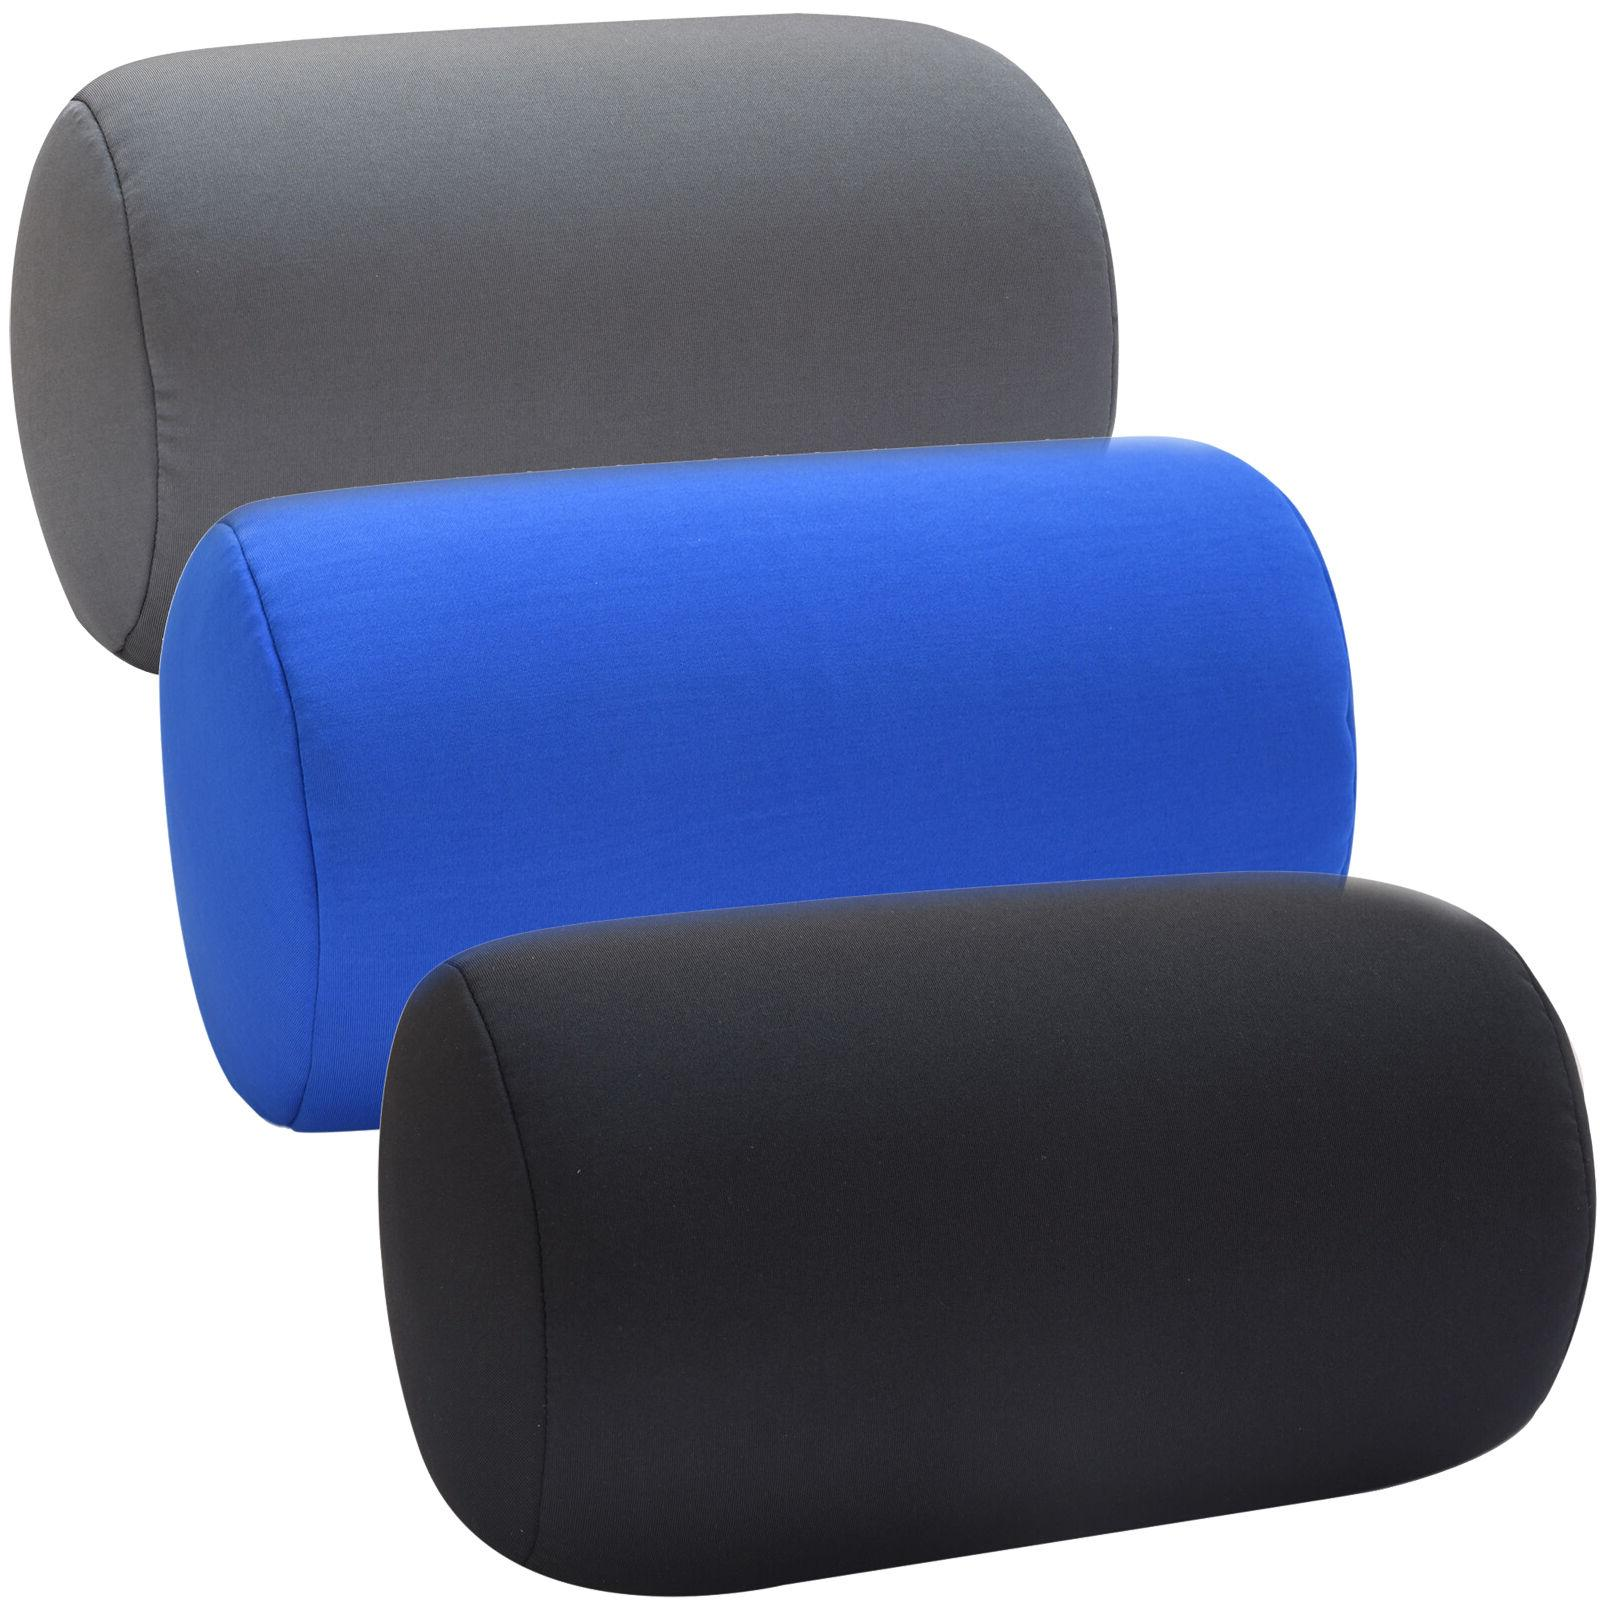 Soft Micro Beads Bed Roll Cushion Neck Head Leg Back Support